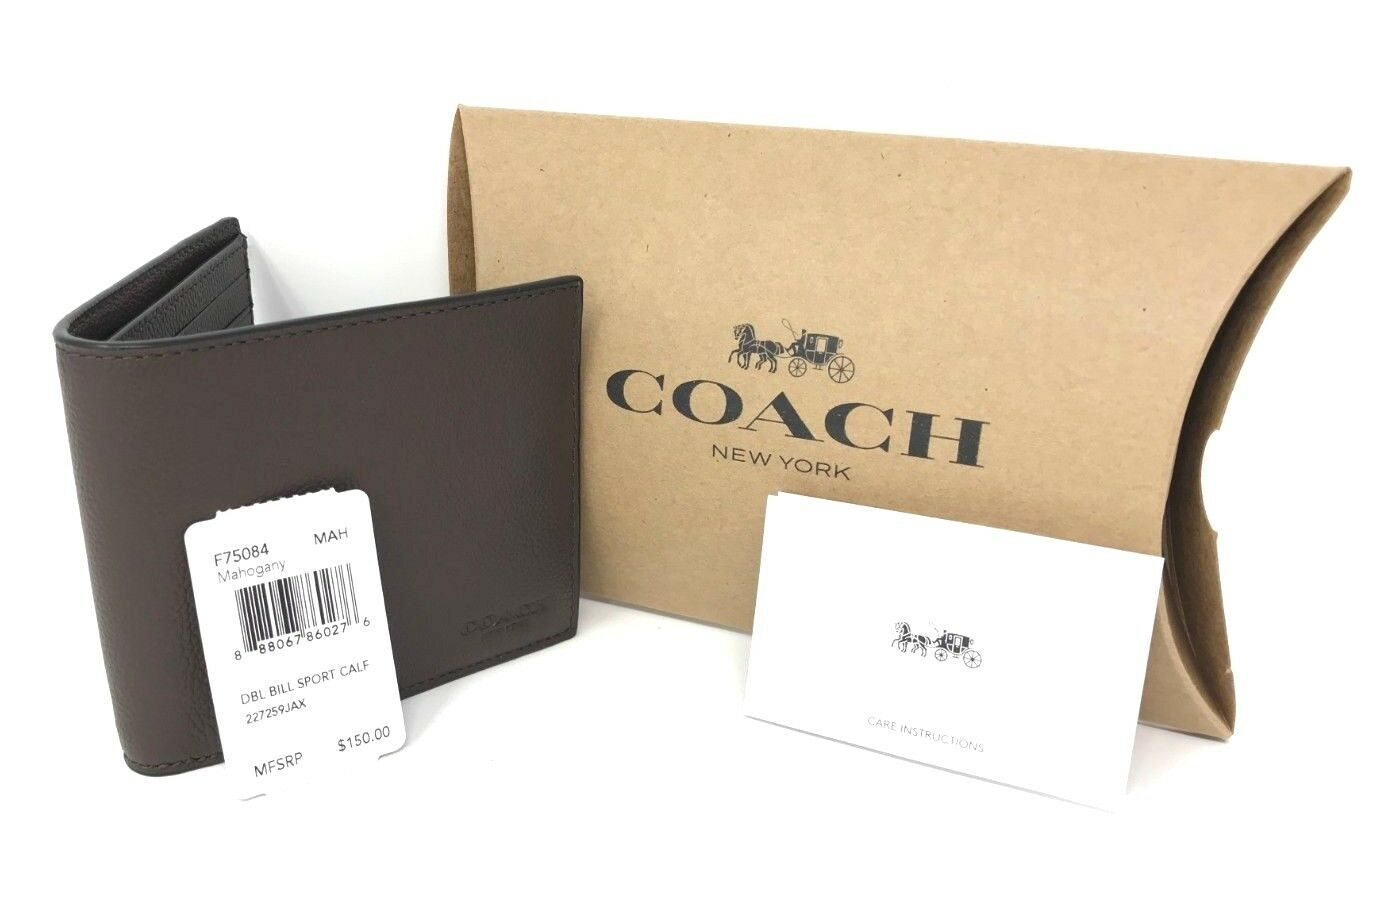 Coach F75084 Men's Double Billfold Sport Calf Mahogany Leather Wallet $150